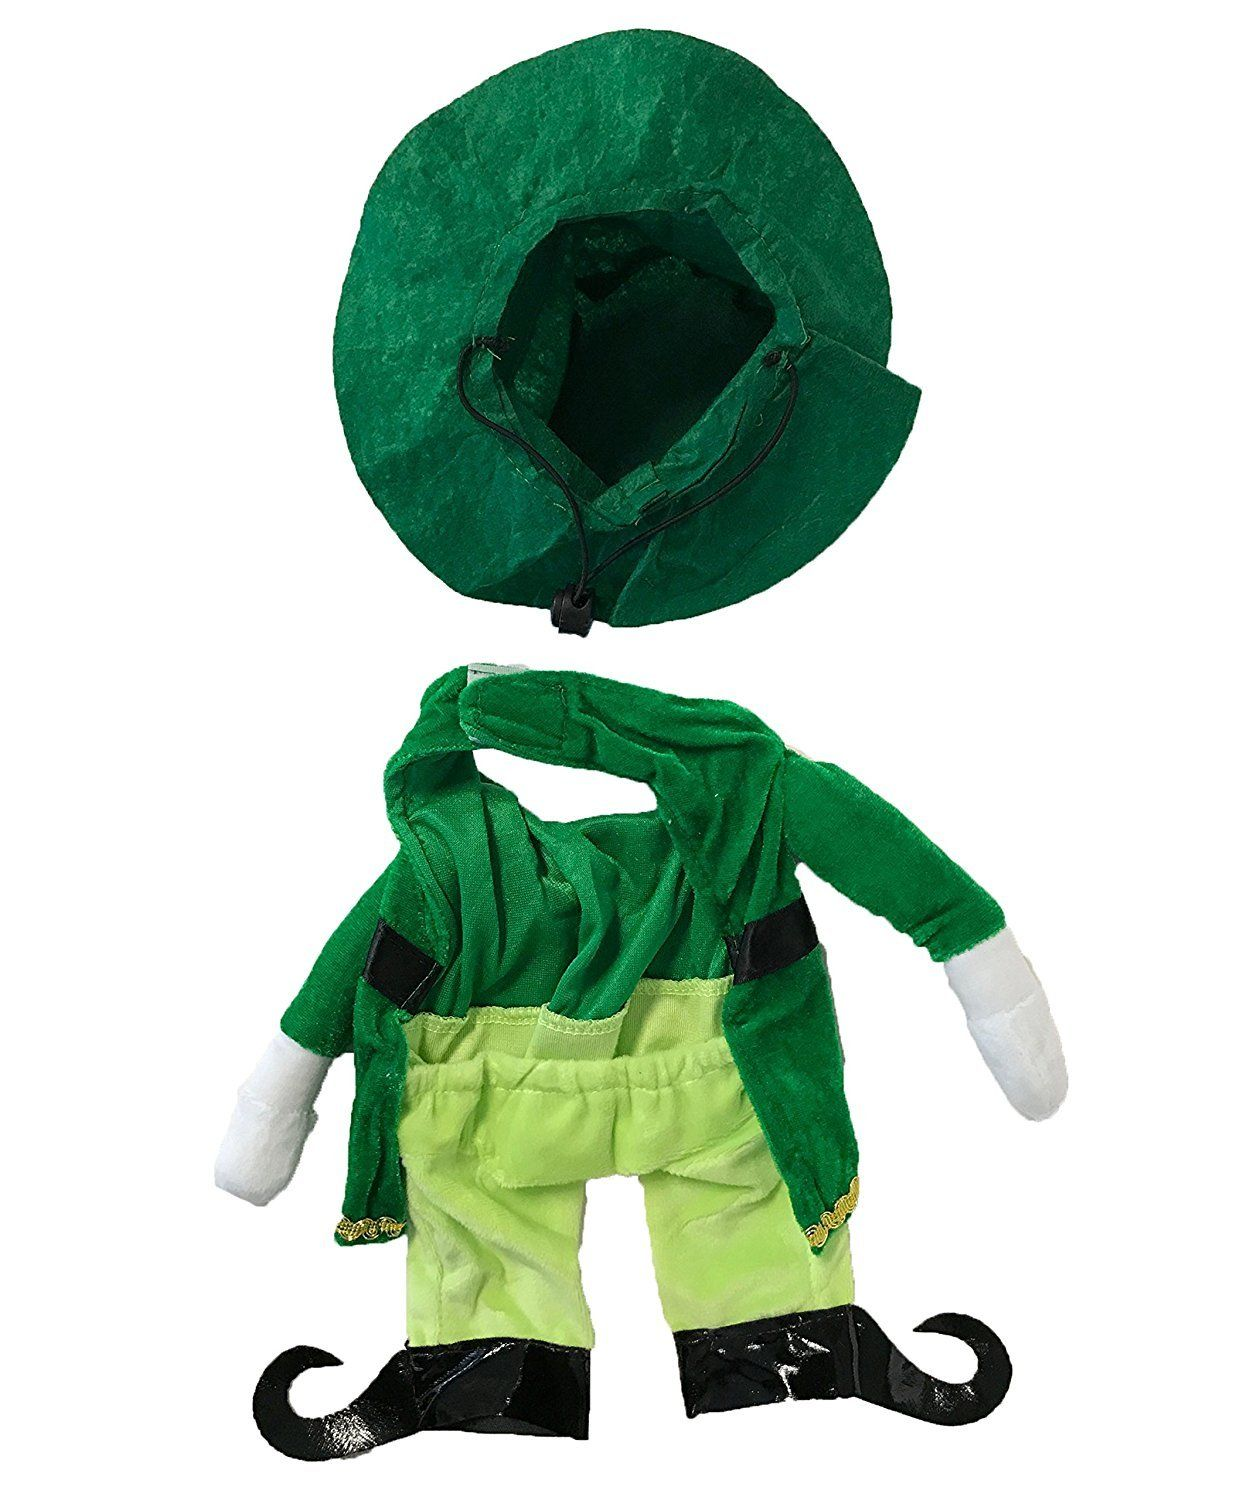 Midlee Fake Arms Small Dog Costume By Leprechaun Medium Read